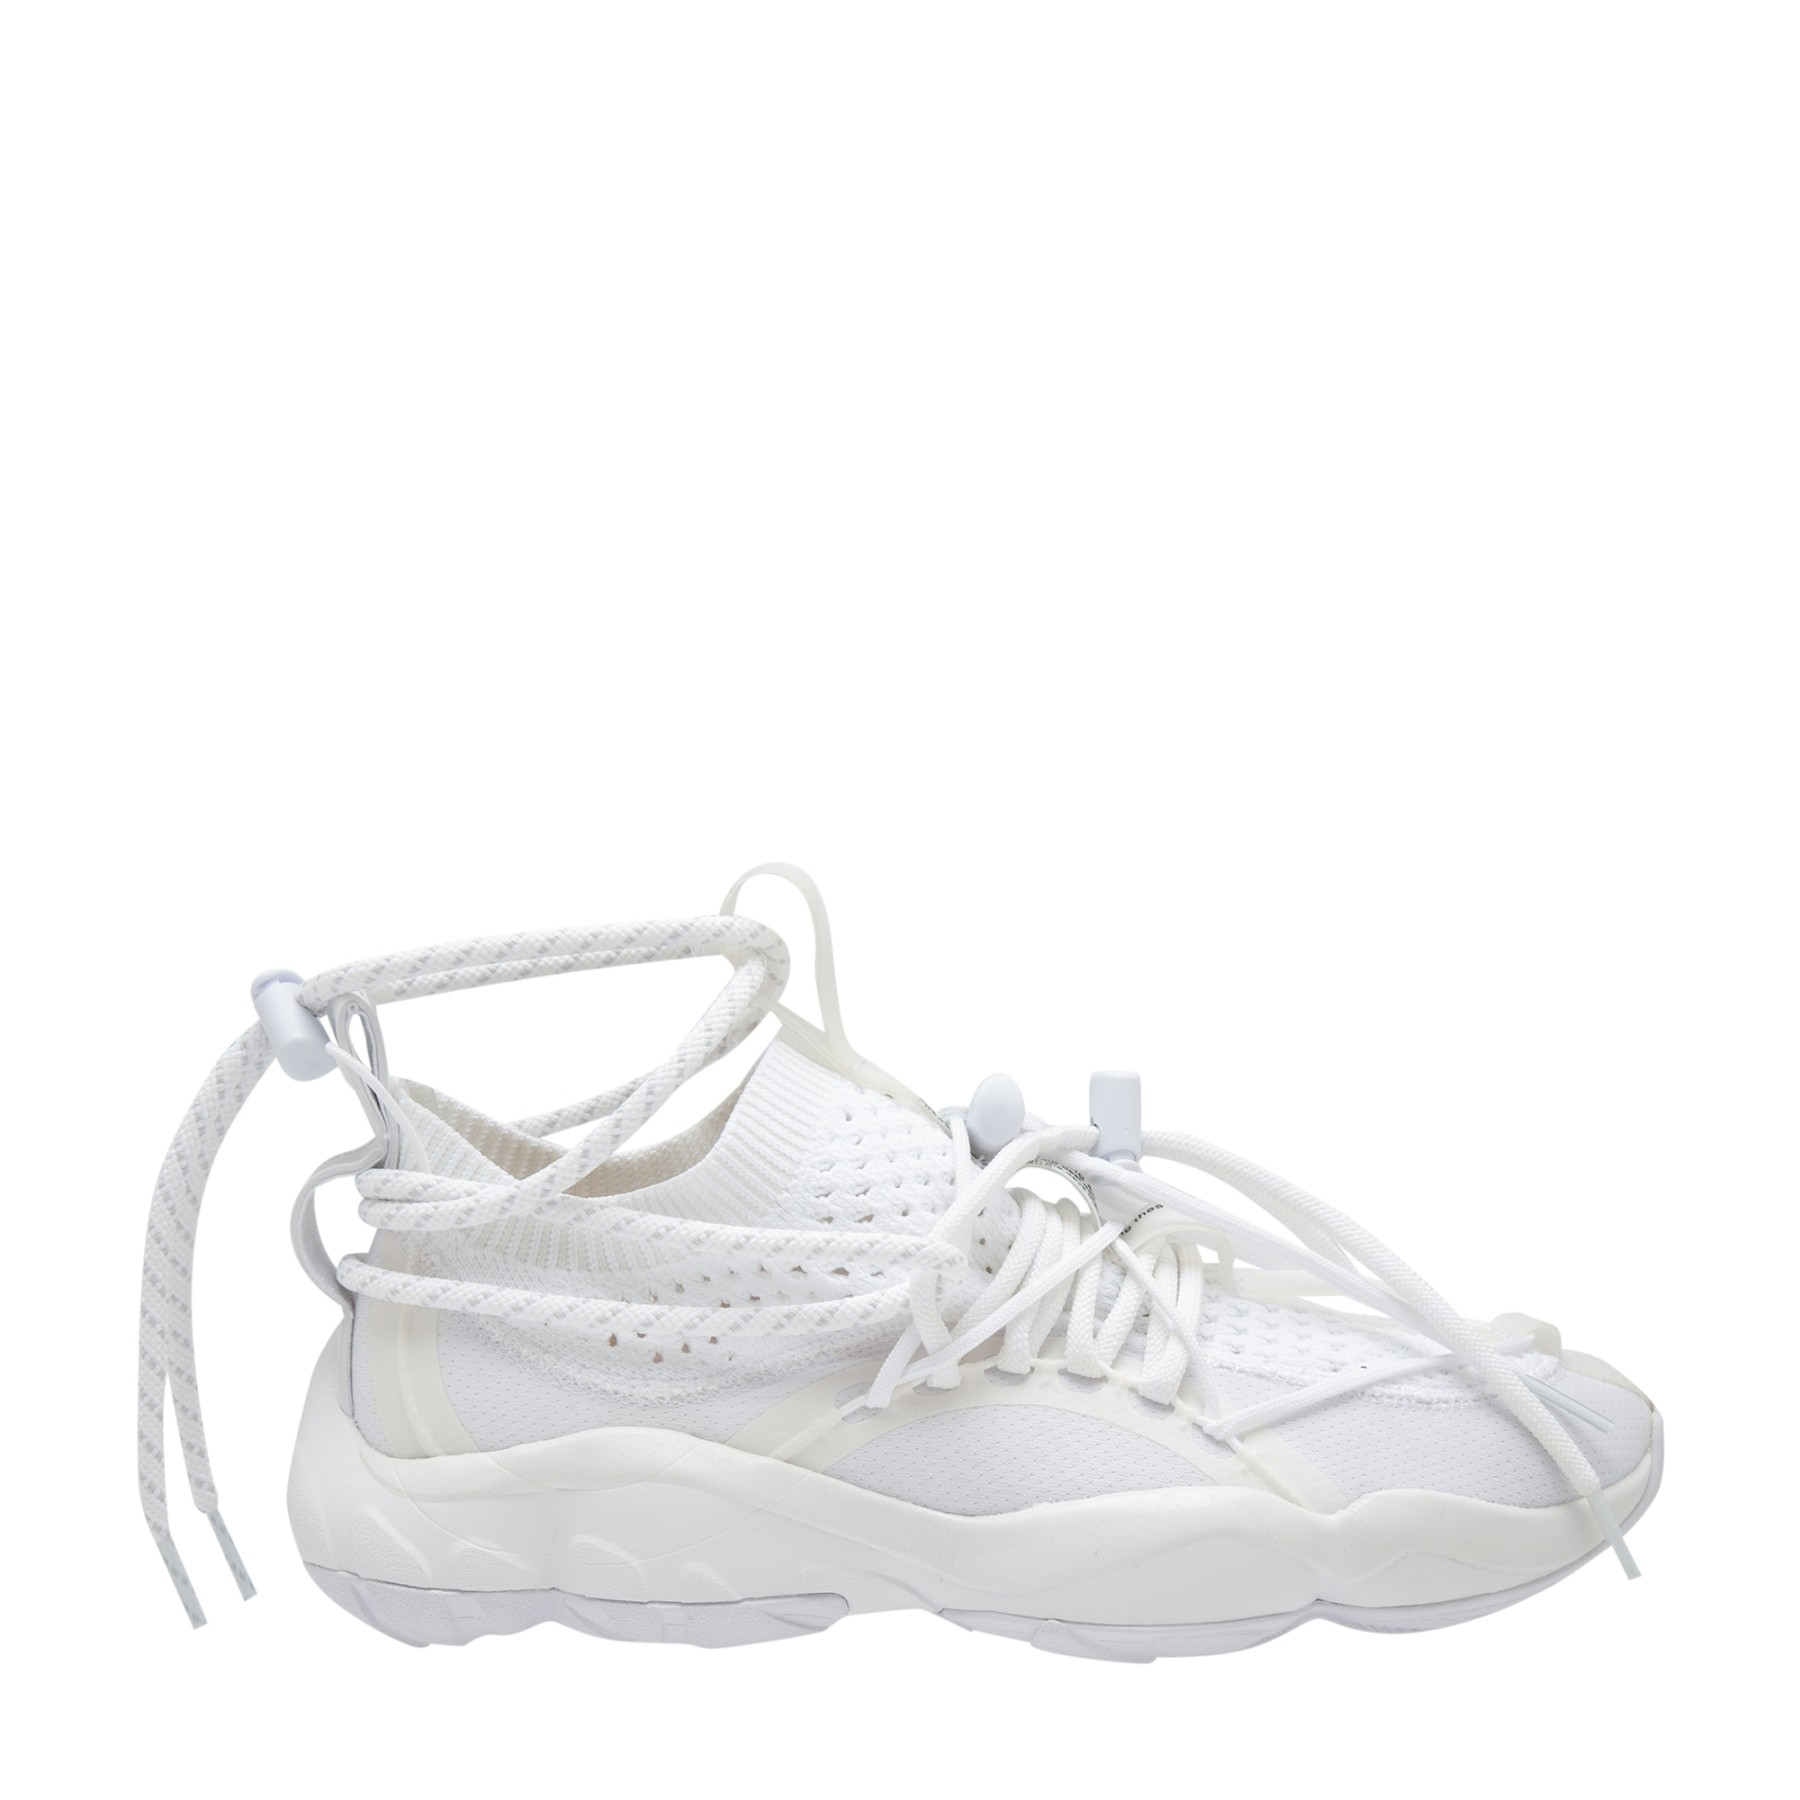 An Exclusive First Look at the Pyer Moss x Reebok DMX Fusion